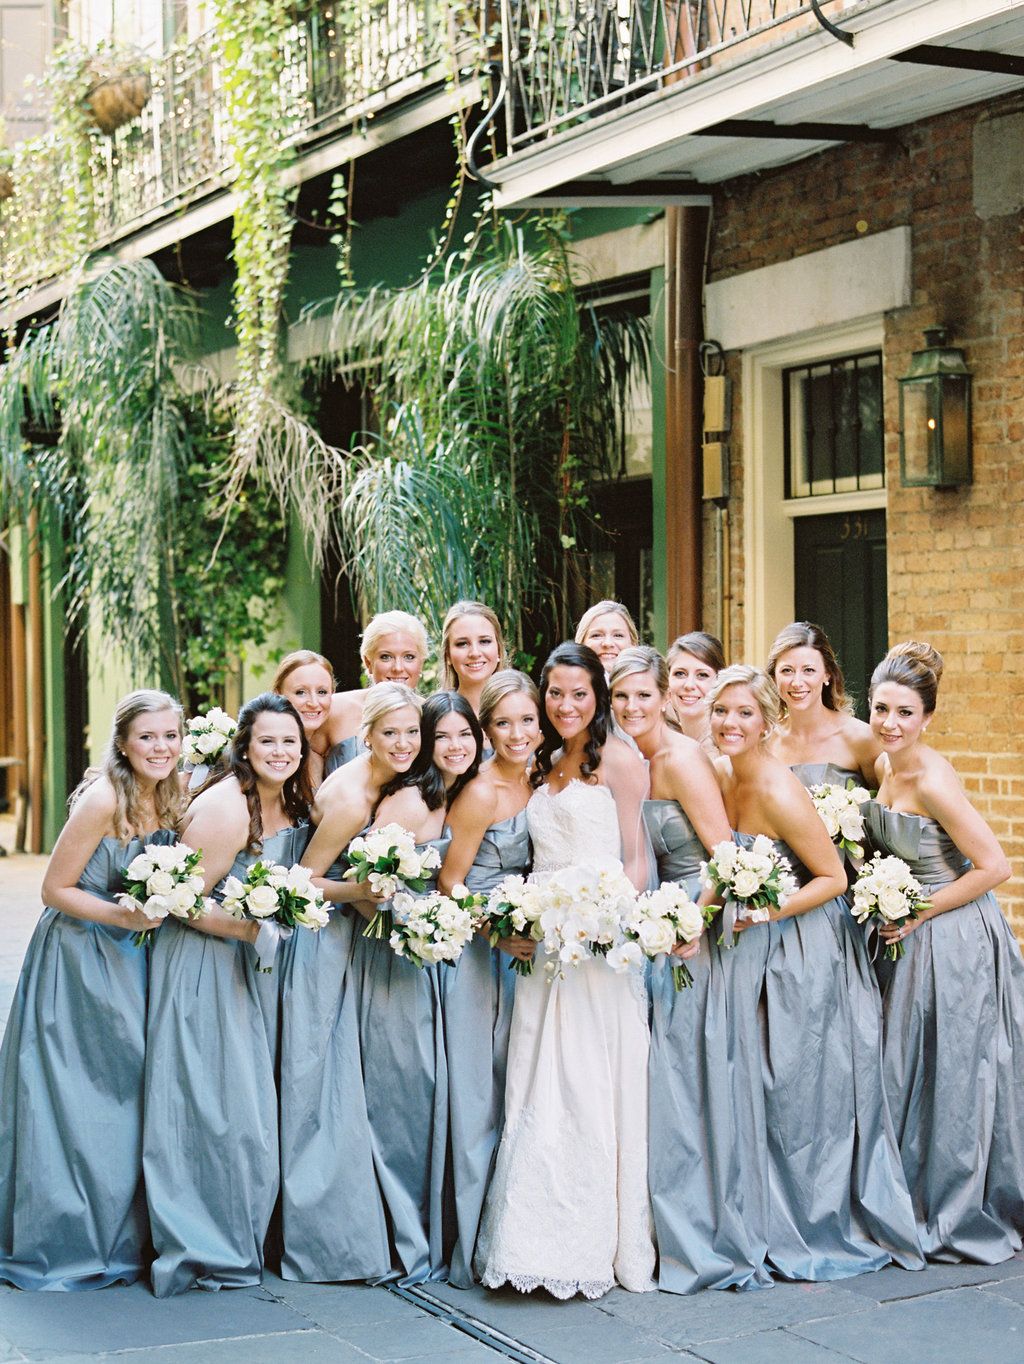 Wedding Planning | New Orleans Wedding | French Quarter Wedding | Sapphire Events | Ryan Ray Photography | White and Green Wedding | Formal Black Tie Wedding | Monique Lhuillier Dress | Gray and white wedding | Grey and white wedding | Formal wedding | Black tie wedding | Exchange Alley | Bridesmaids dresses | Gray dress | Large bridal party